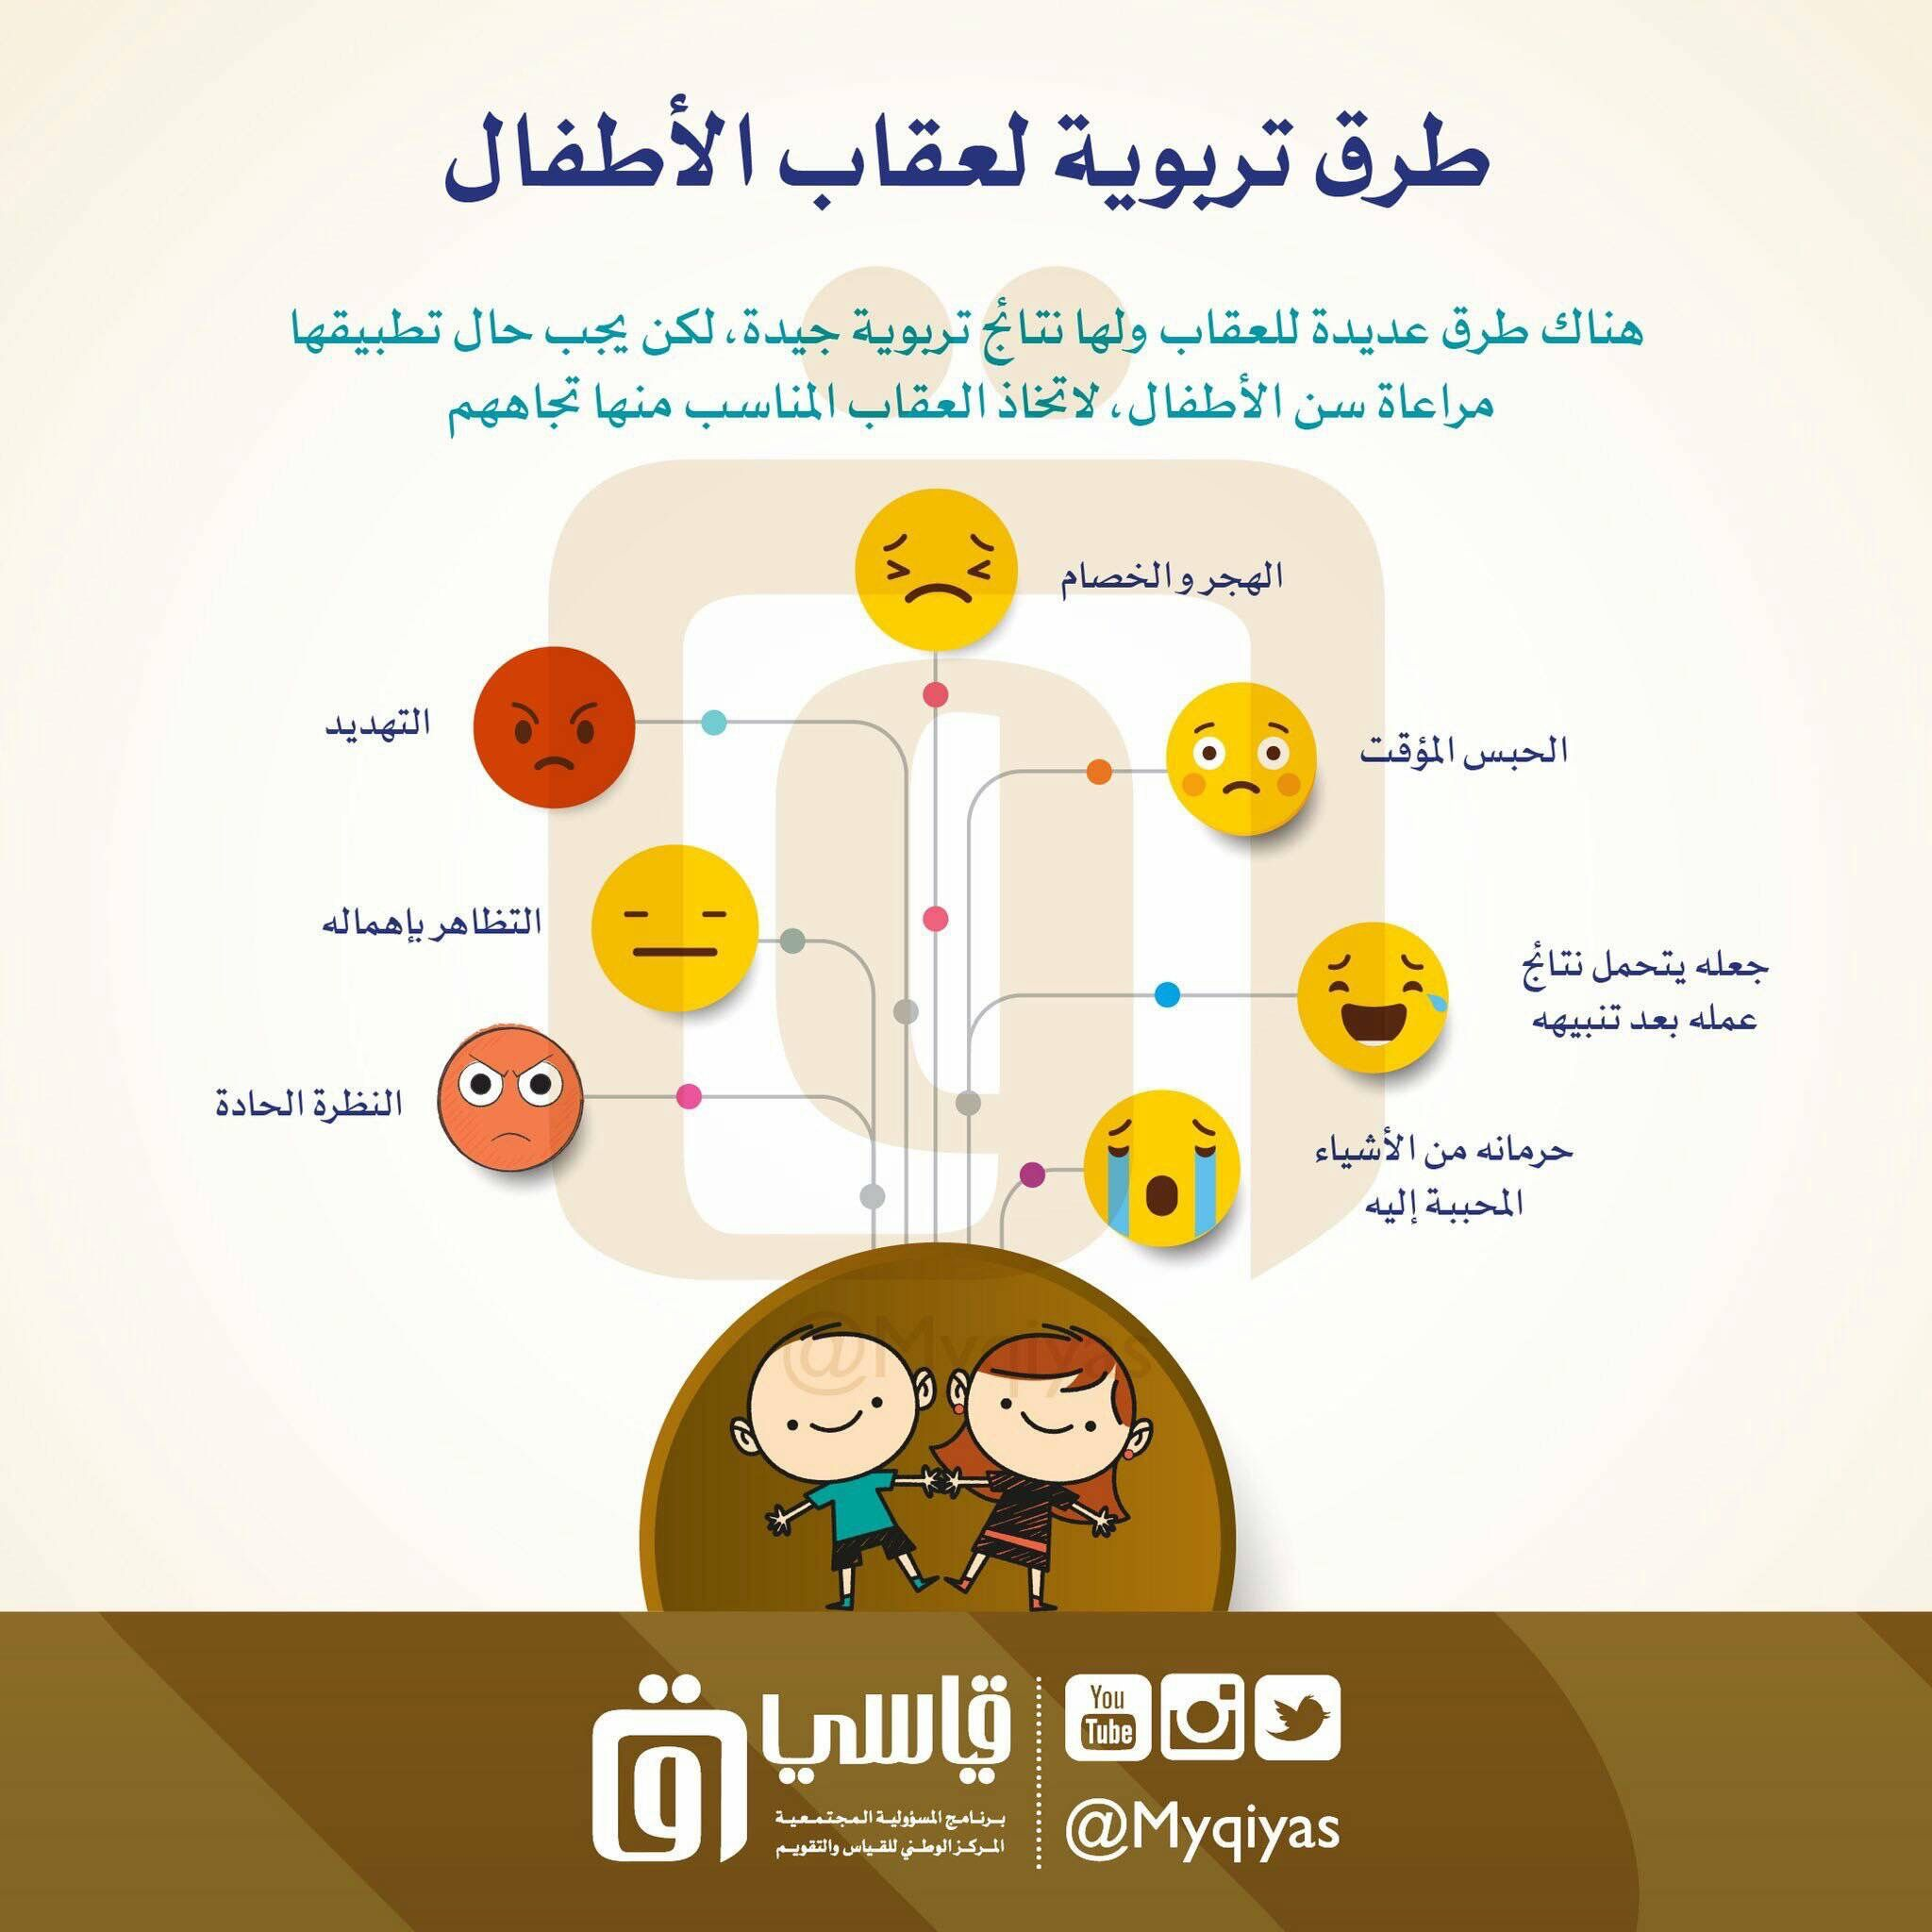 Pin By Ali On تطوير الذات Islamic Kids Activities Kids And Parenting Children And Family